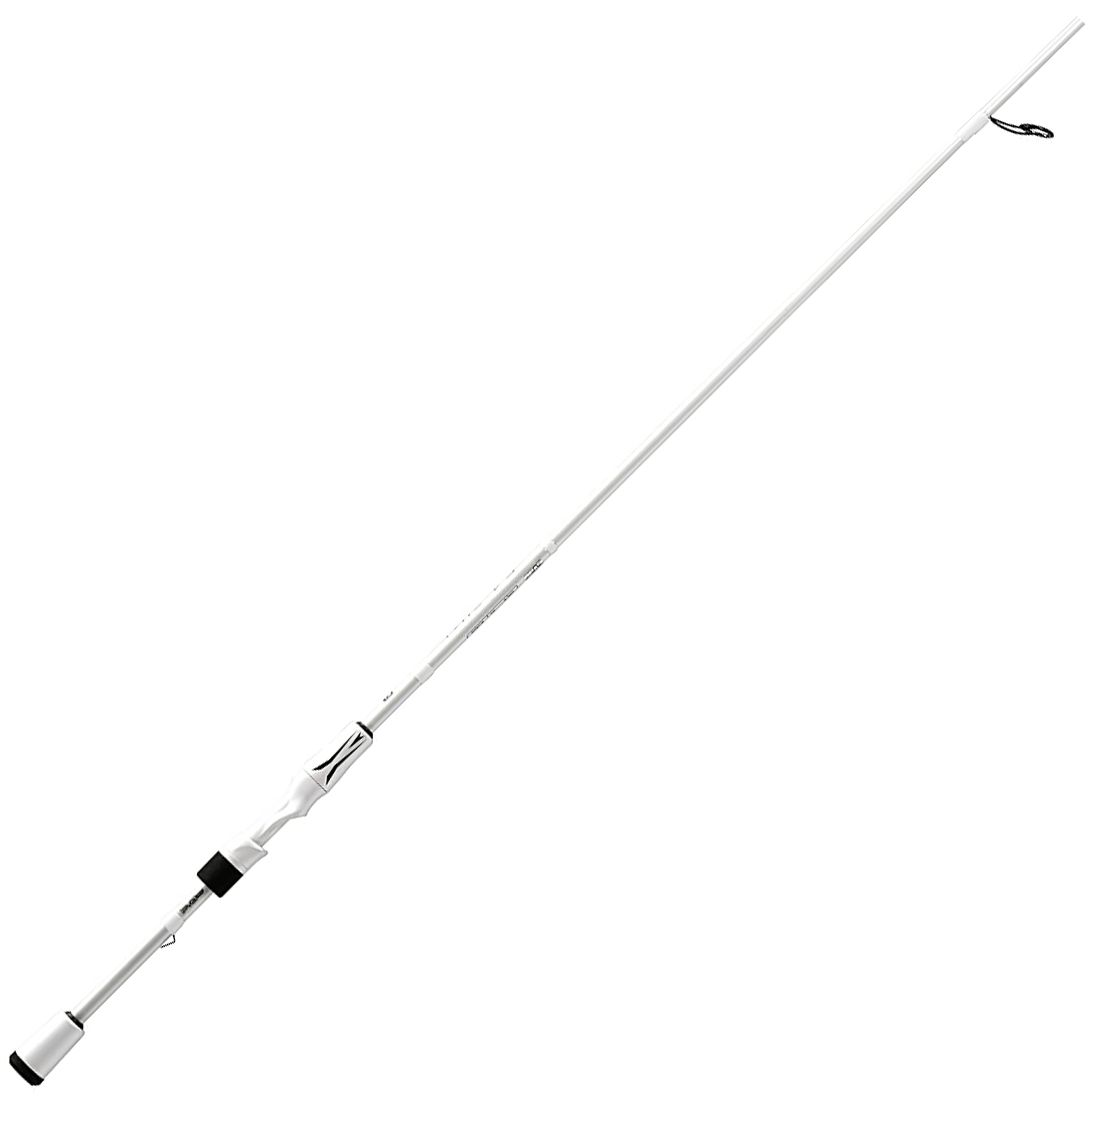 13 Fishing Fate V3 Spinning Rod, carbon thumbnail